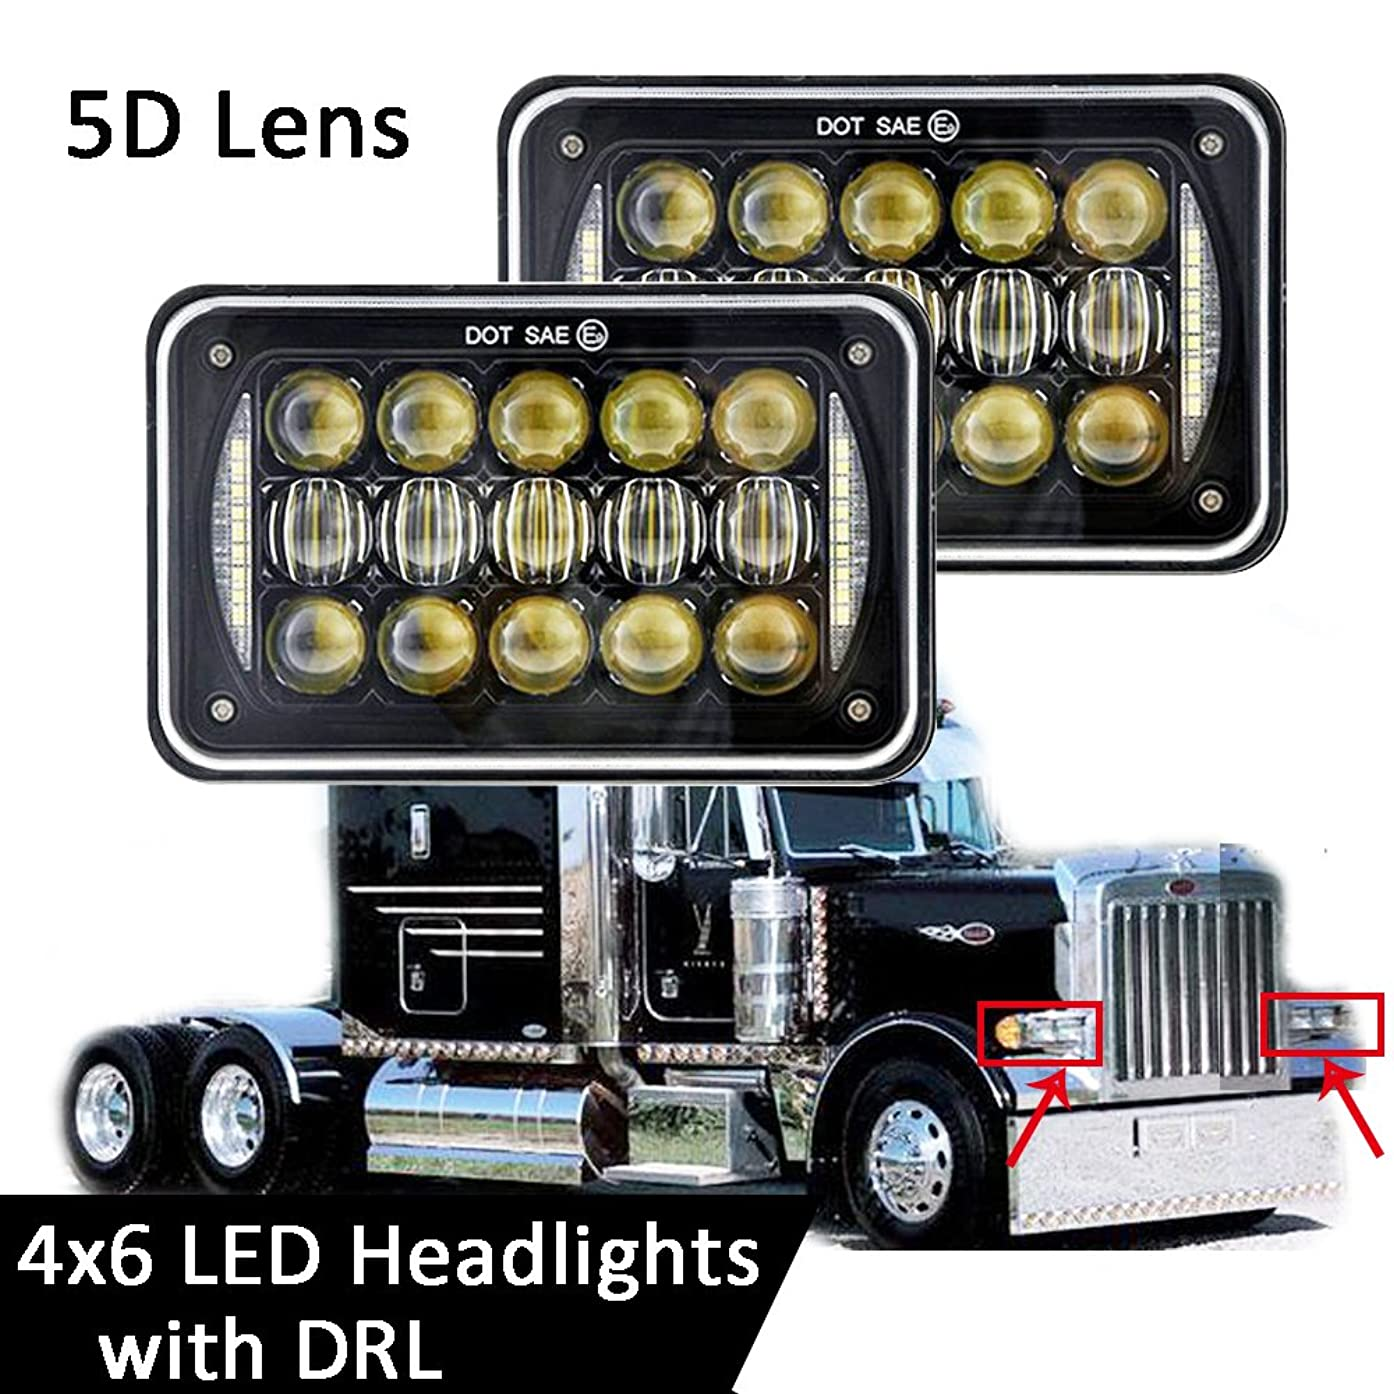 2PCS 60W 4x6 inch LED Rectangular Headlights Replace H4651 H4652 H4656 H4666 H6545 Projector For Peterbilt Kenworth Freightliner-Black